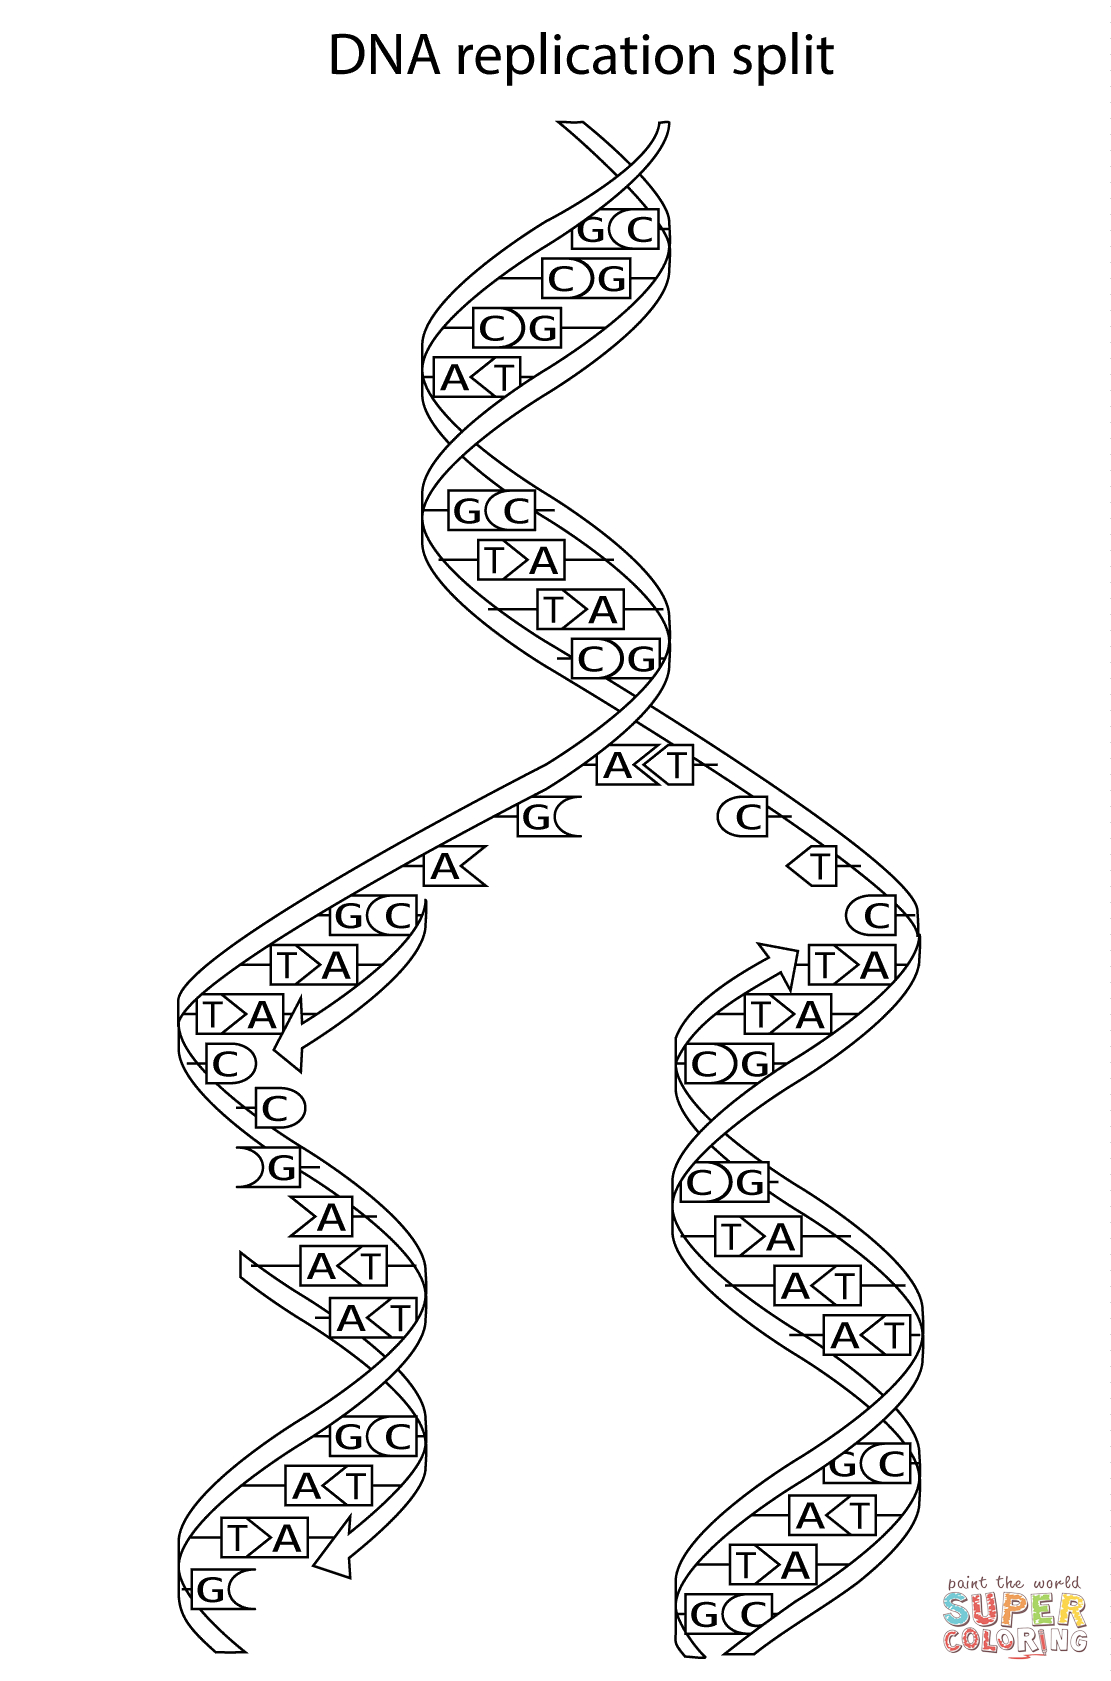 Dna Replication Split Coloring Page  Free Printable Coloring Pages Or Dna Replication Coloring Worksheet